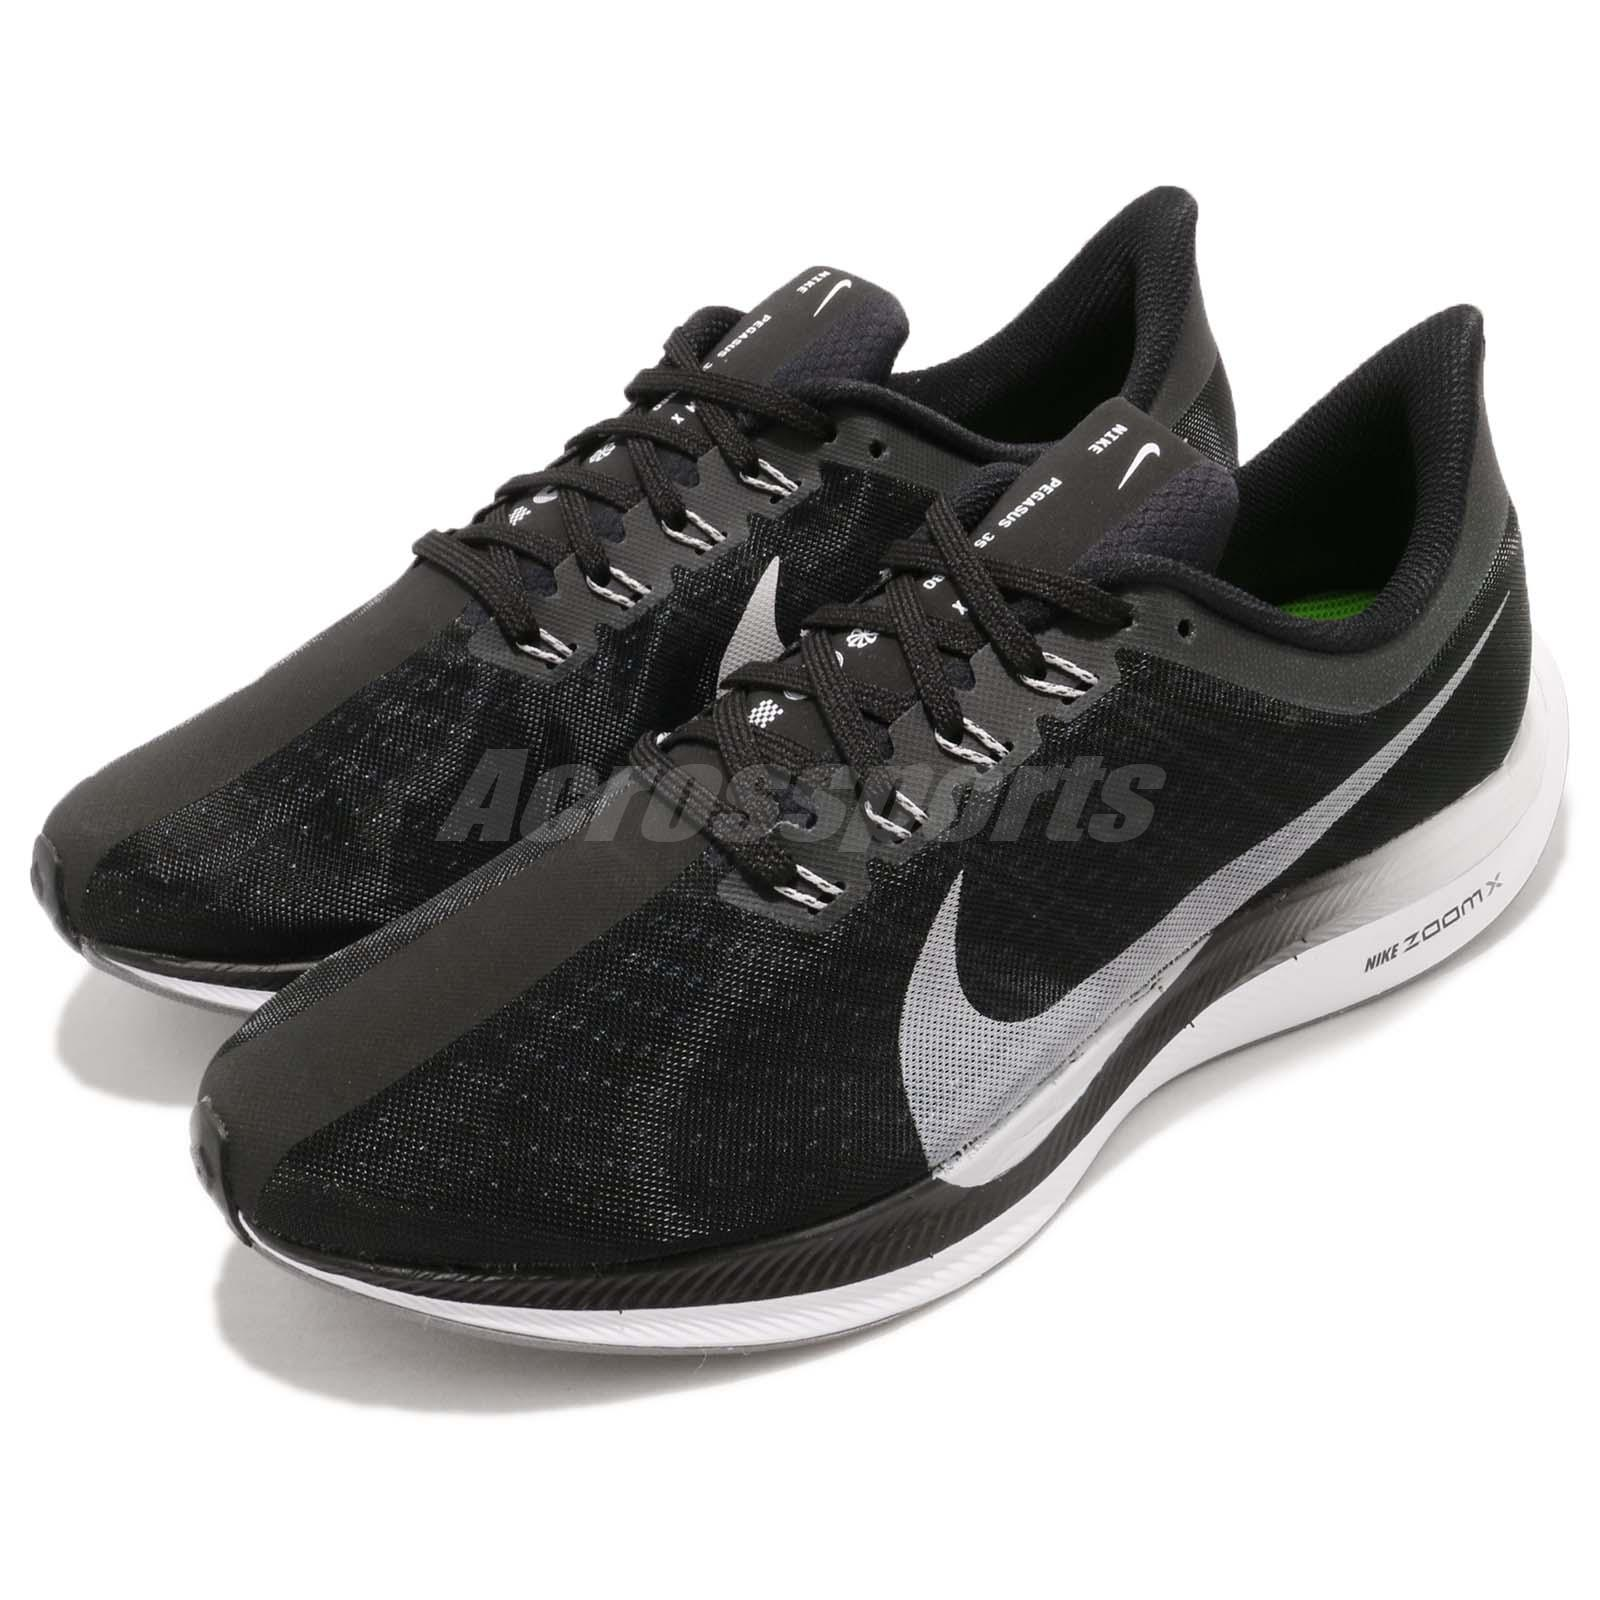 7f859702bb449 Details about Nike Zoom Pegasus 35 Turbo Black Vast Grey ZoomX Men Running  Shoes AJ4114-001